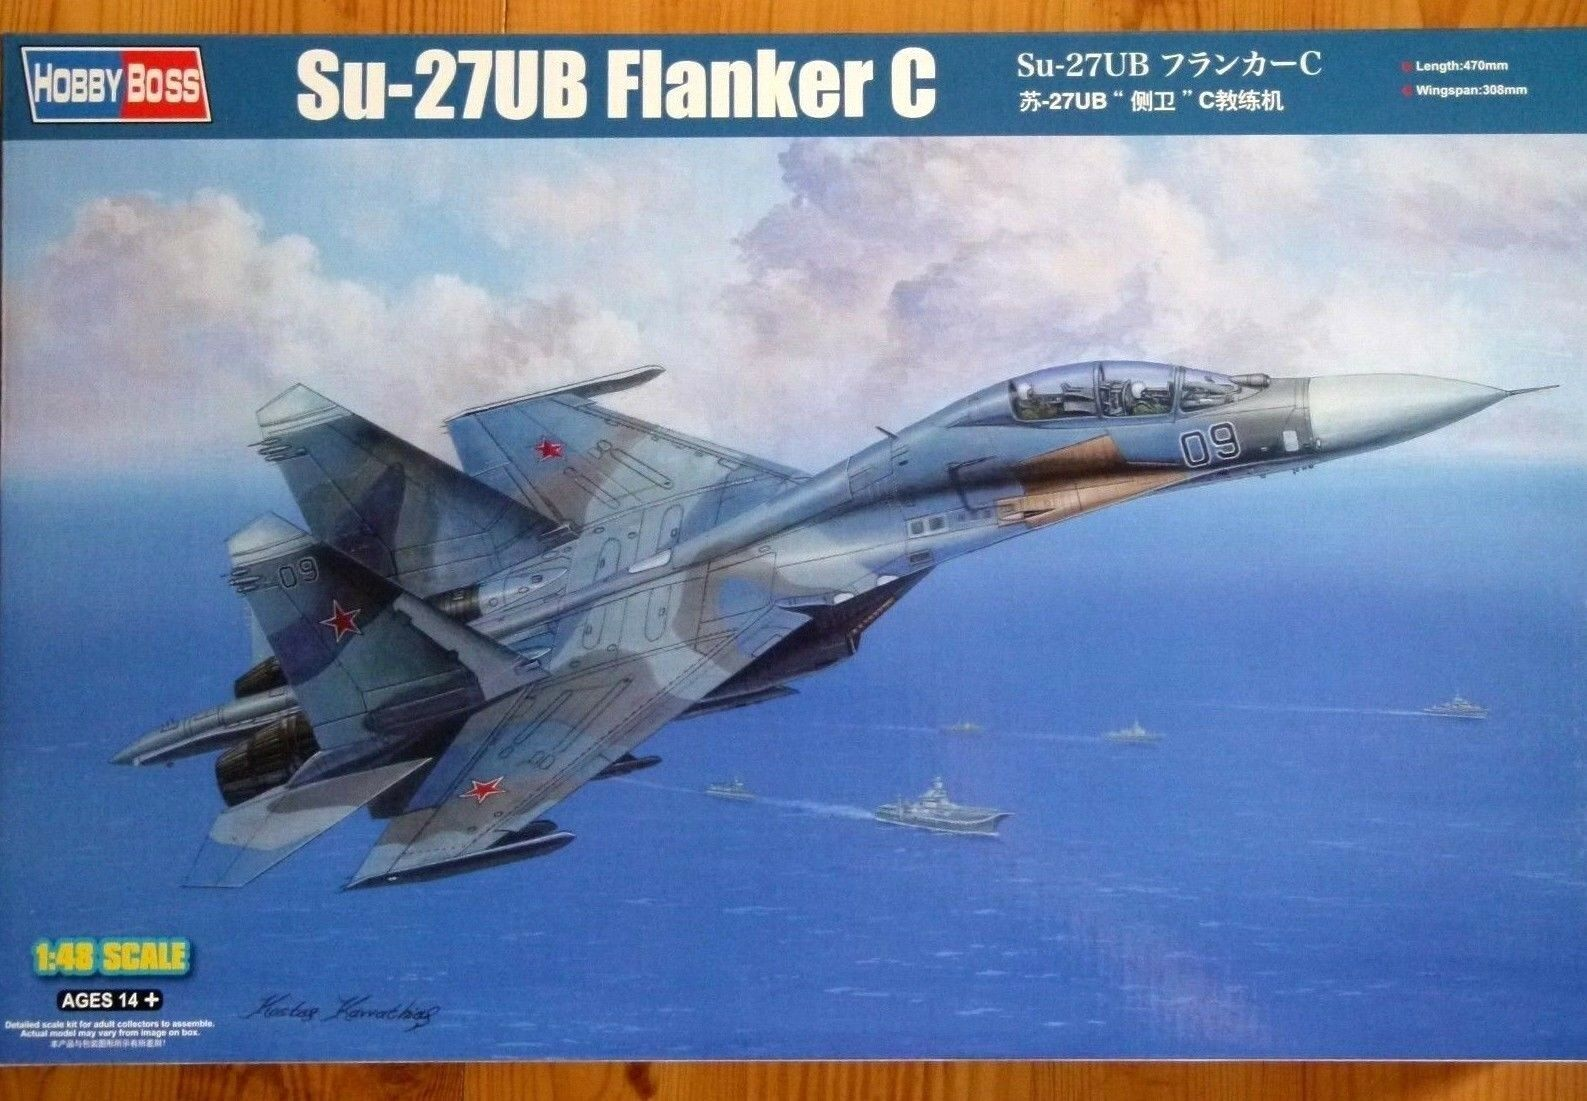 Hobbyboss 1 48 Sukhoi Su-27UB Flanker C Aircraft Model Kit